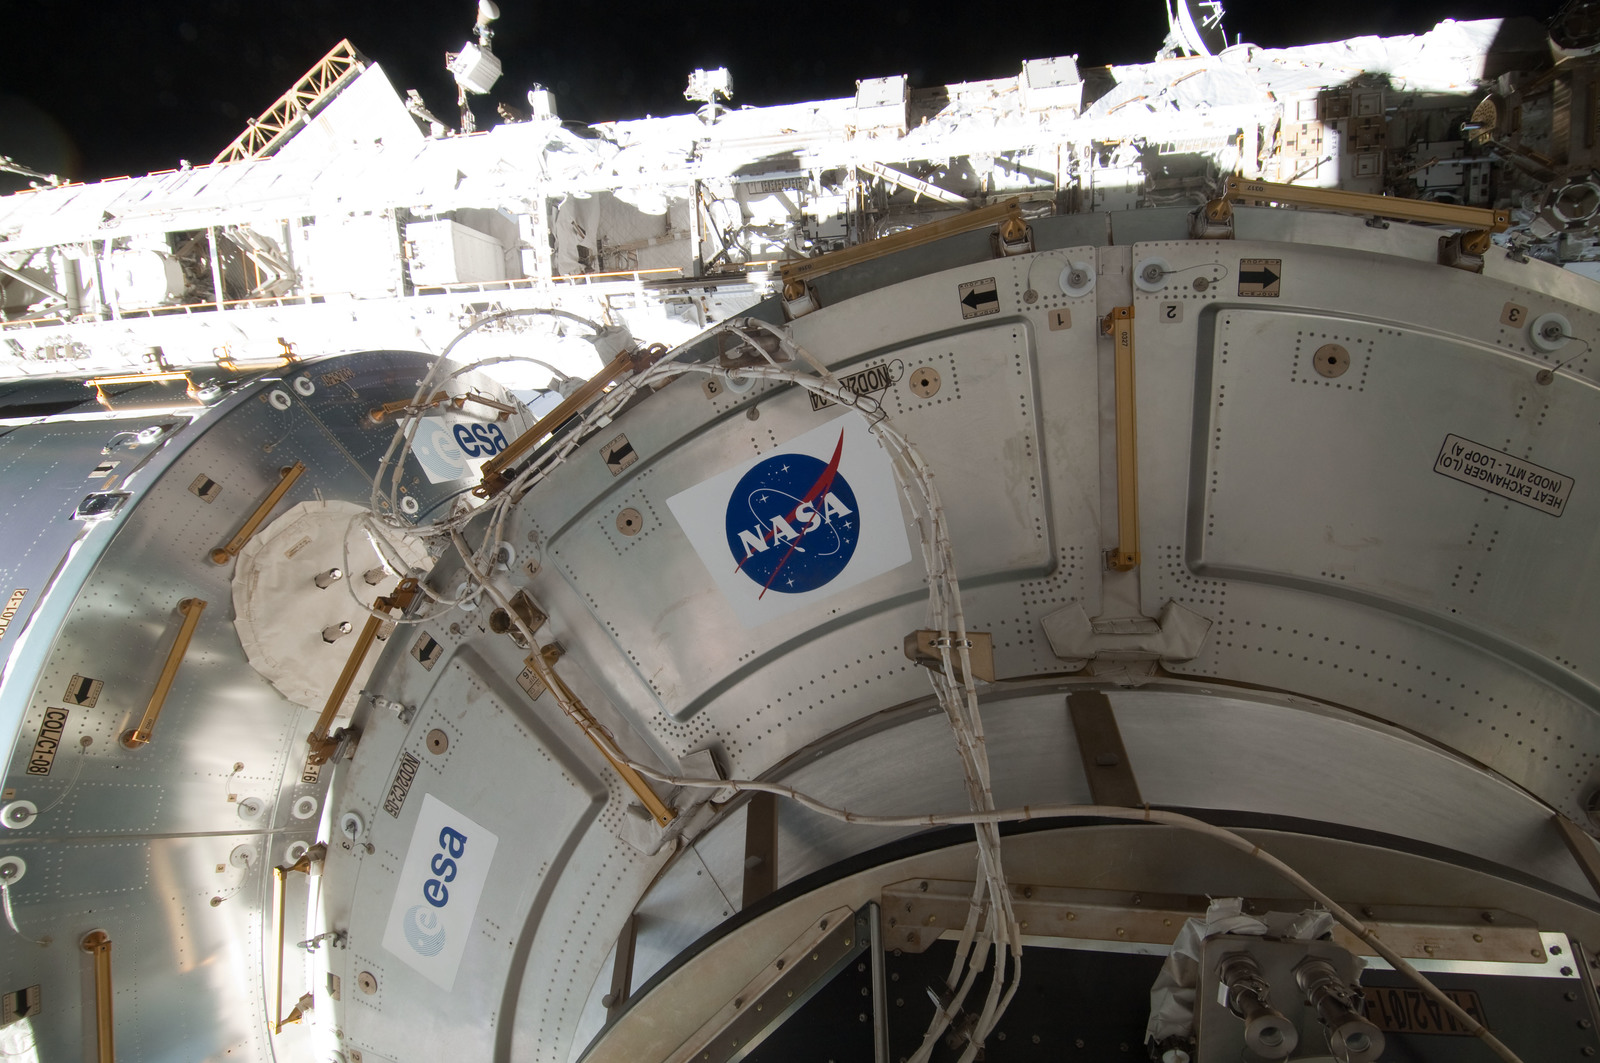 S127E006908 - STS-127 - Exterior Modules during EVA-1 on STS-127 / Expedition 20 Joint Operations